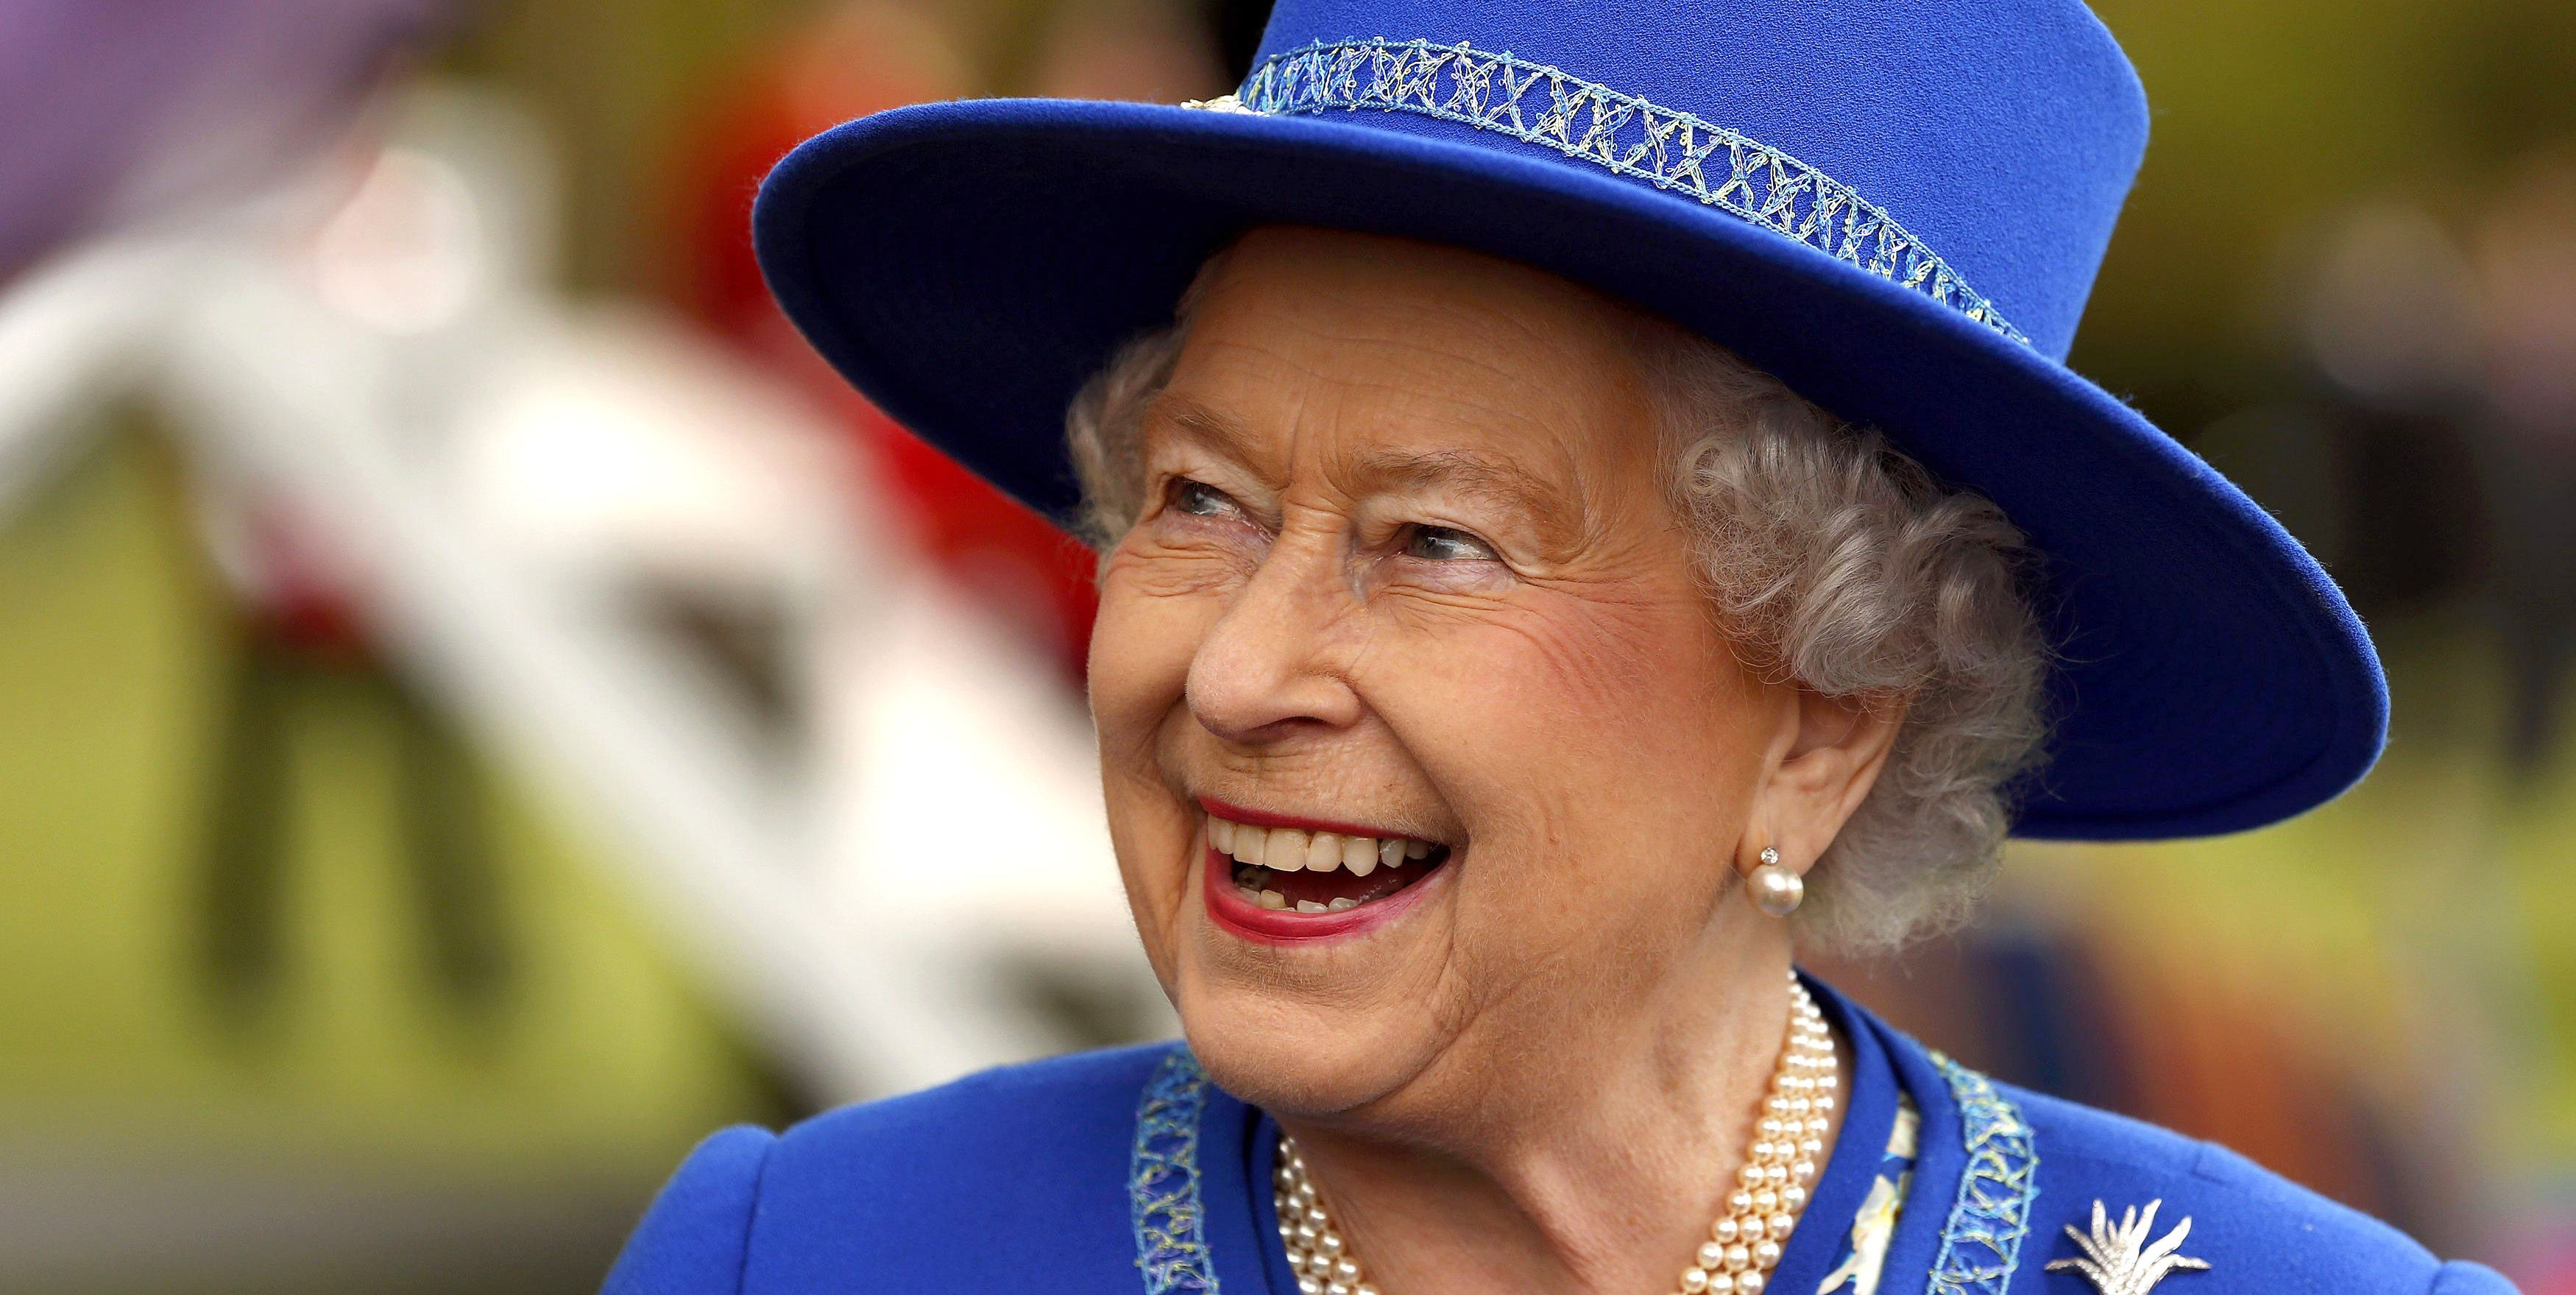 Queen Elizabeth, 92, Went Horseback Riding This Weekend—What Did You Do?